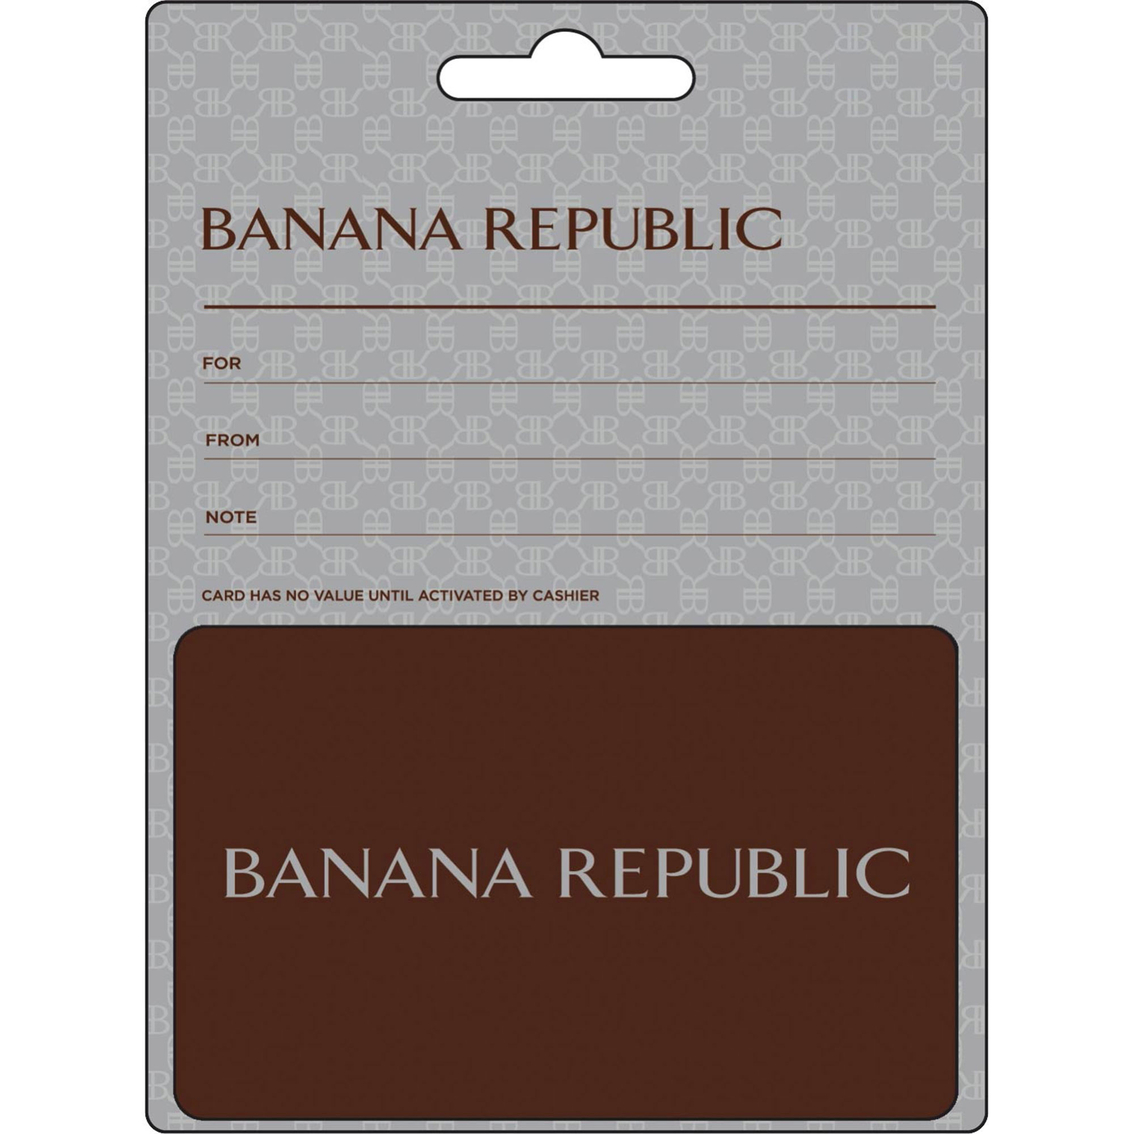 No Annual Fee: Without an annual fee to worry about, both the Banana Republic Credit Card and the Banana Republic Store Card can be purely vehicles for saving money. The lack of a fee also makes them $ cheaper than the average credit card/5.